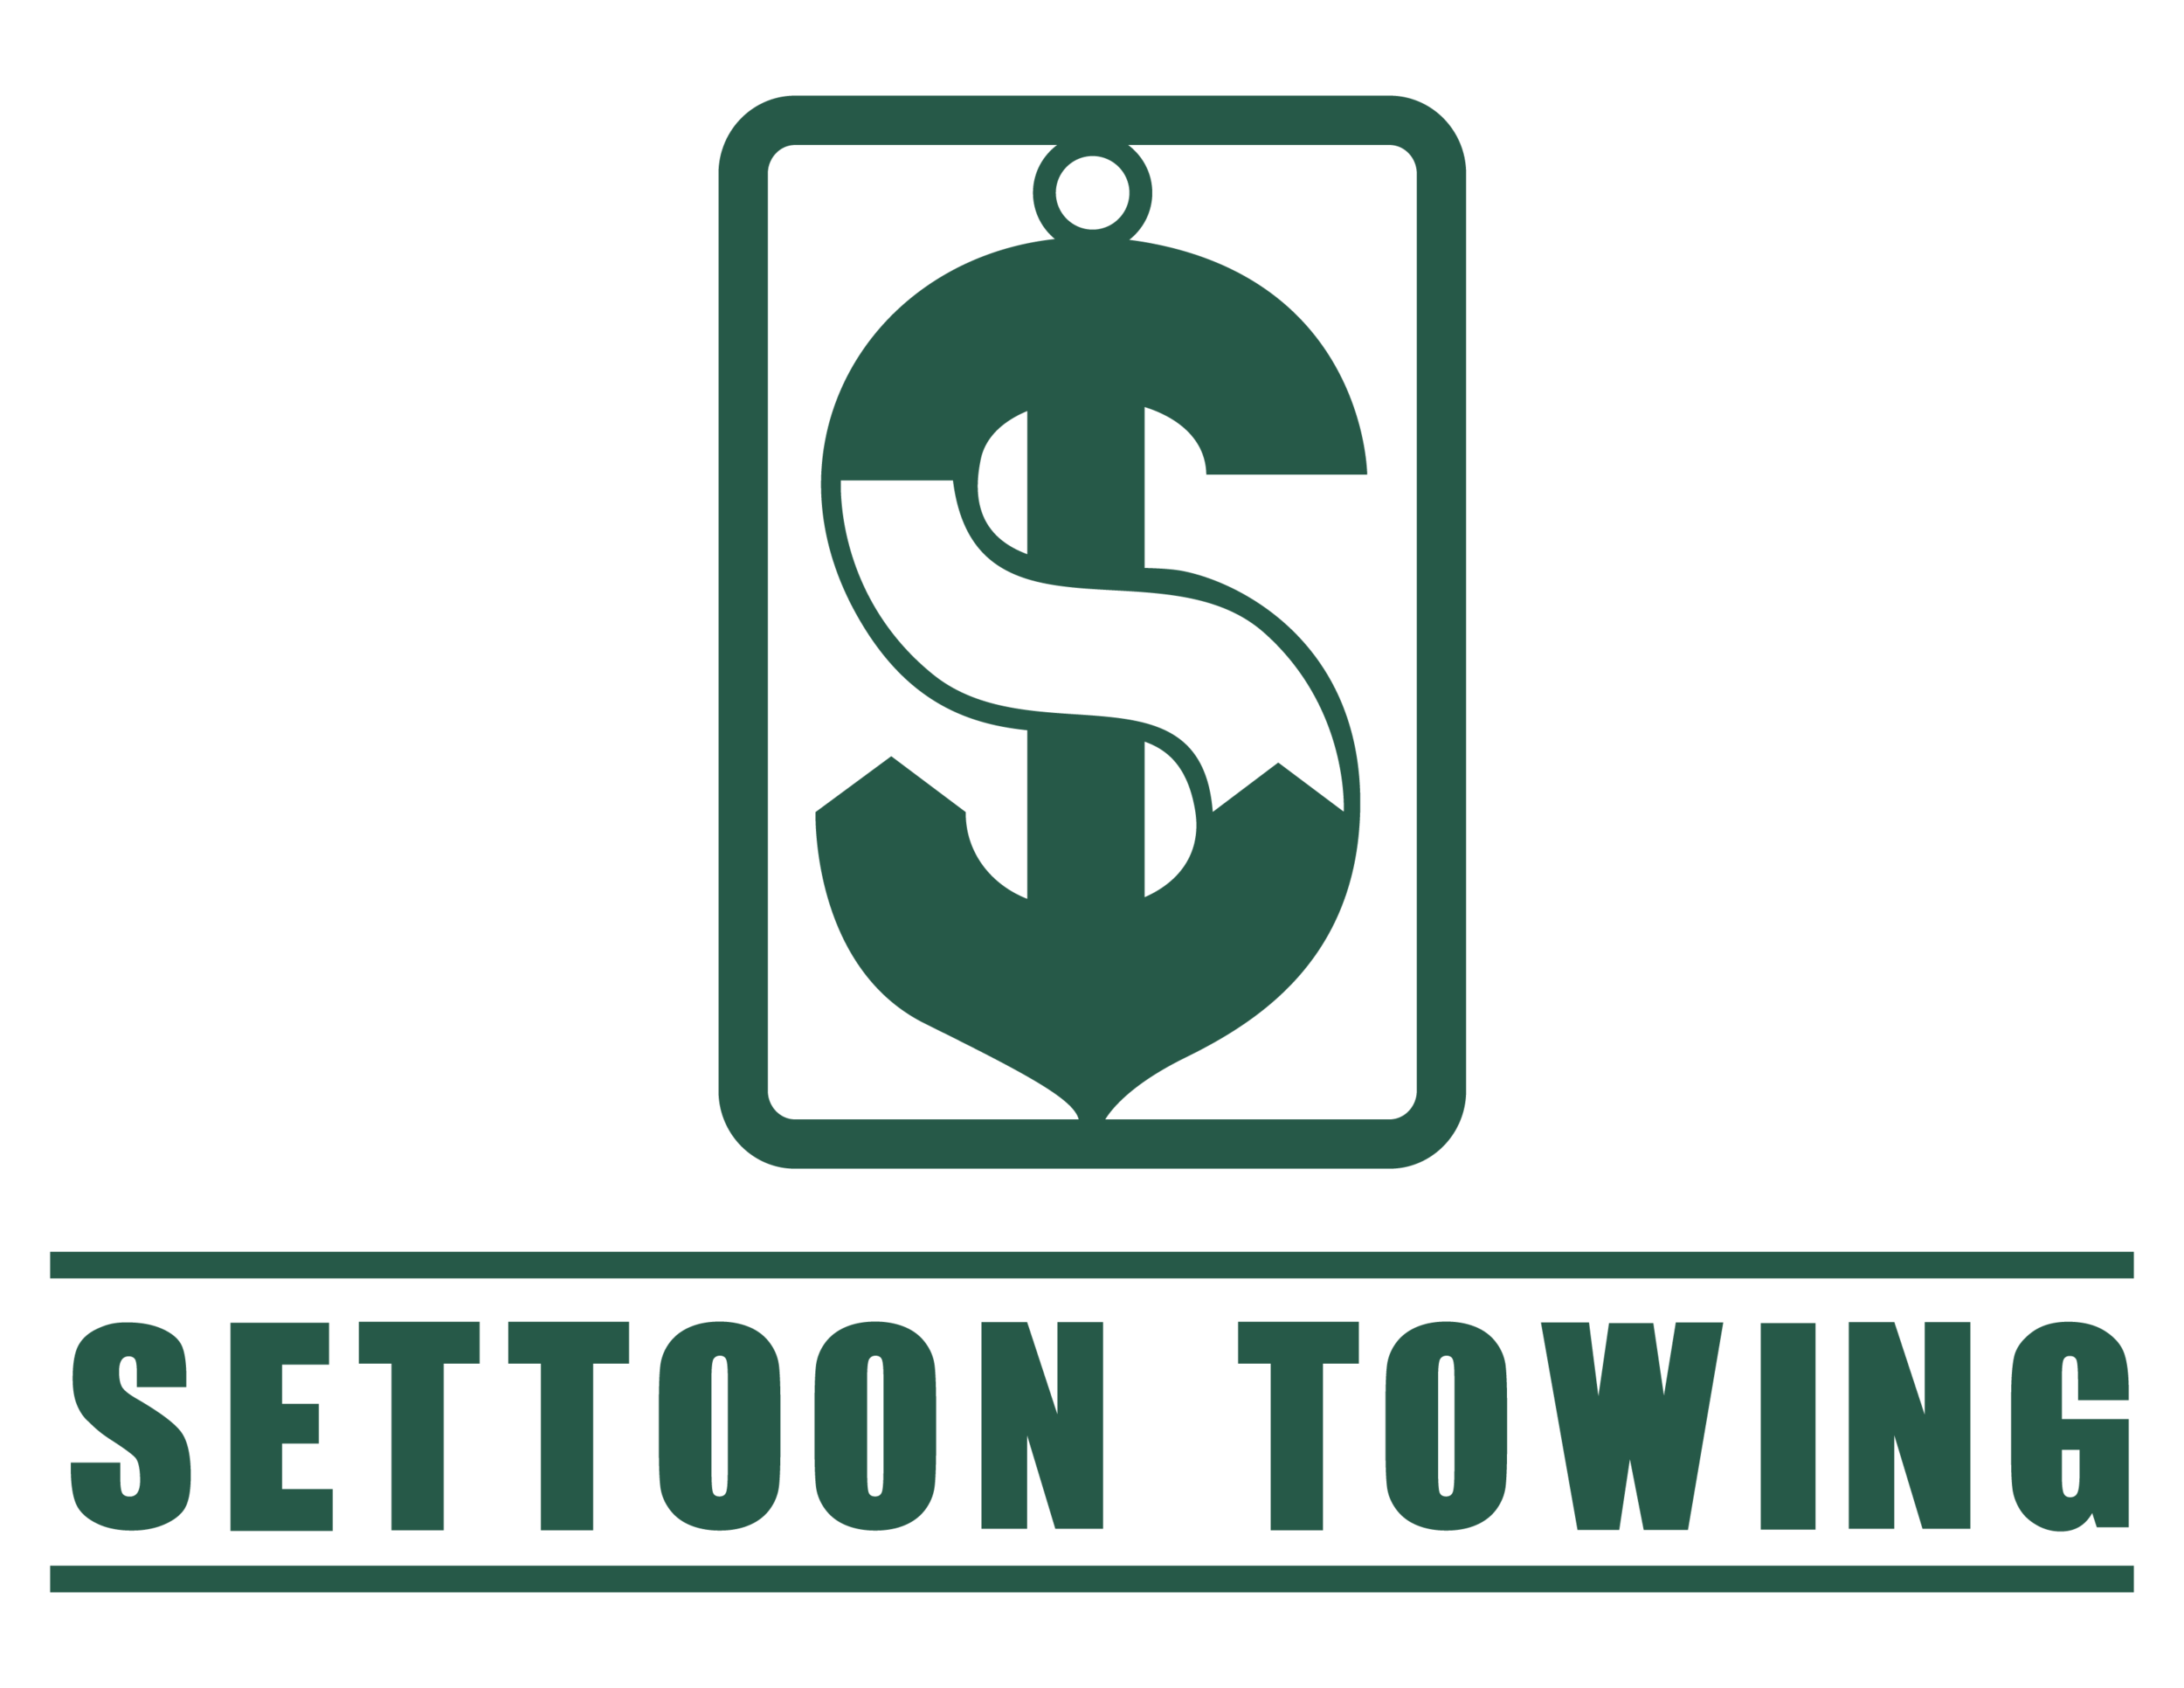 Settoon Towing-Logo-01.png